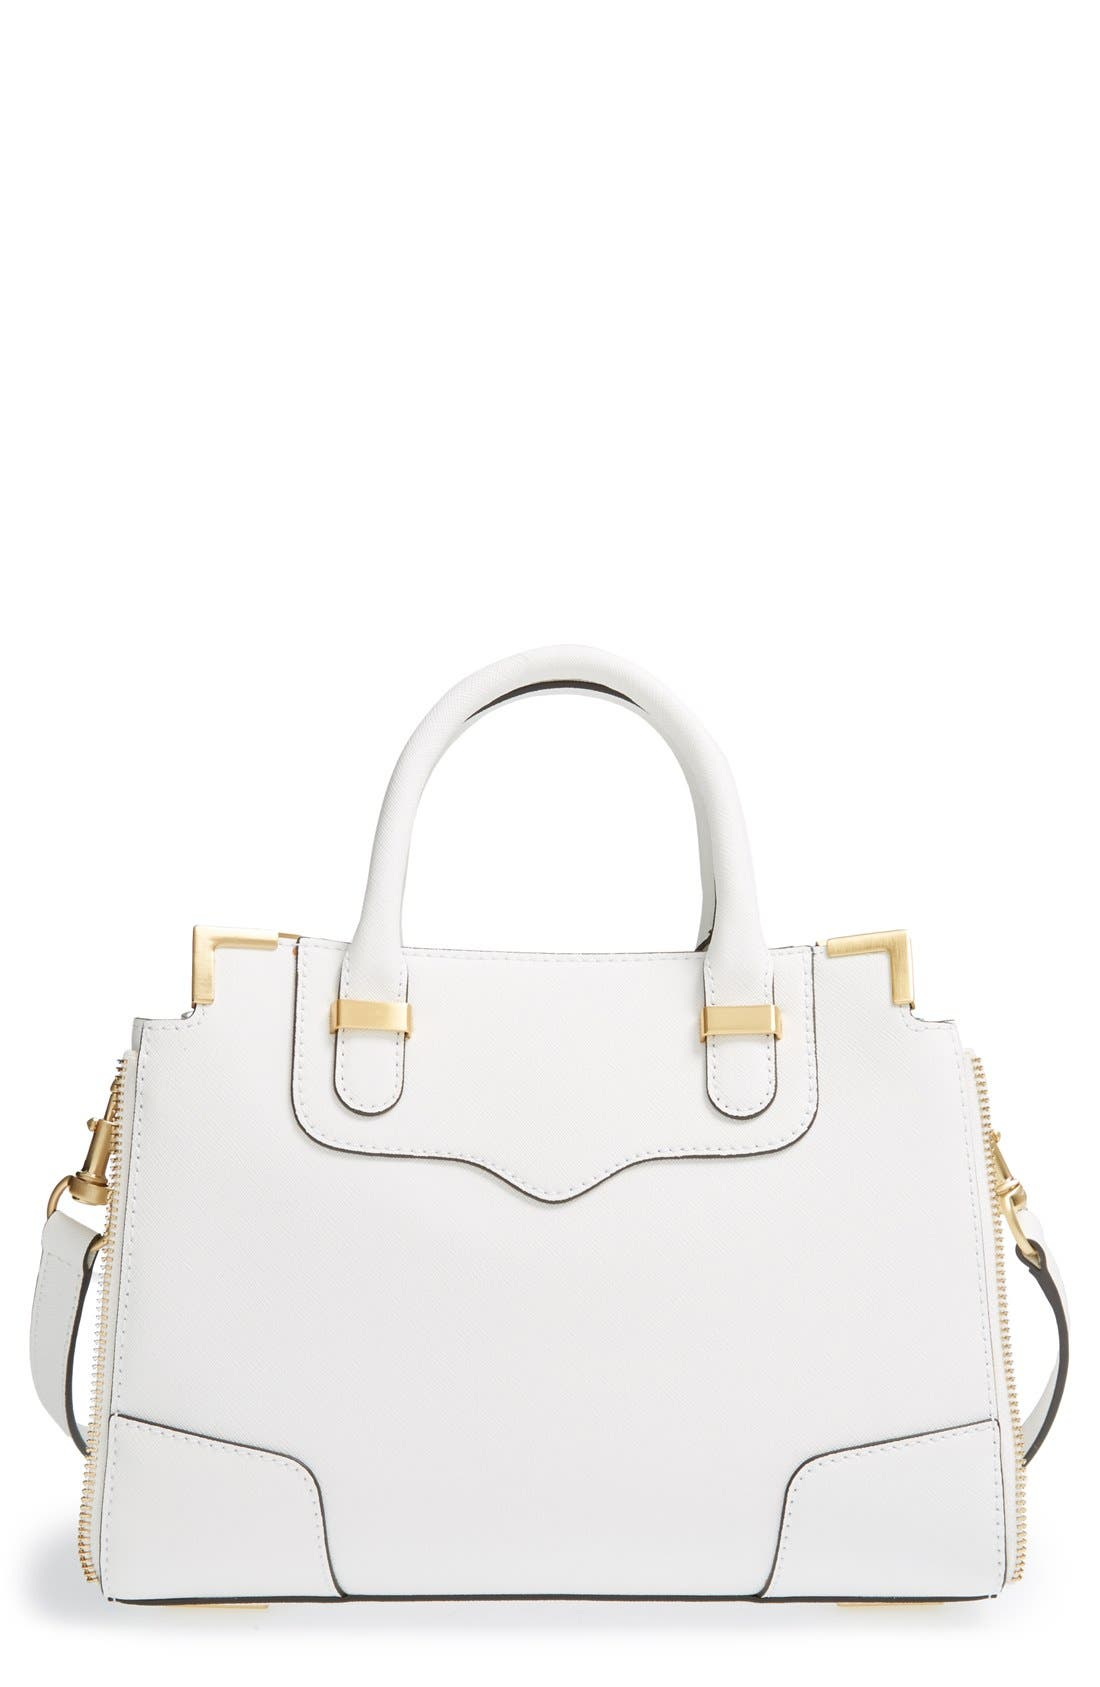 Alternate Image 1 Selected - Rebecca Minkoff 'Small Amorous' Satchel